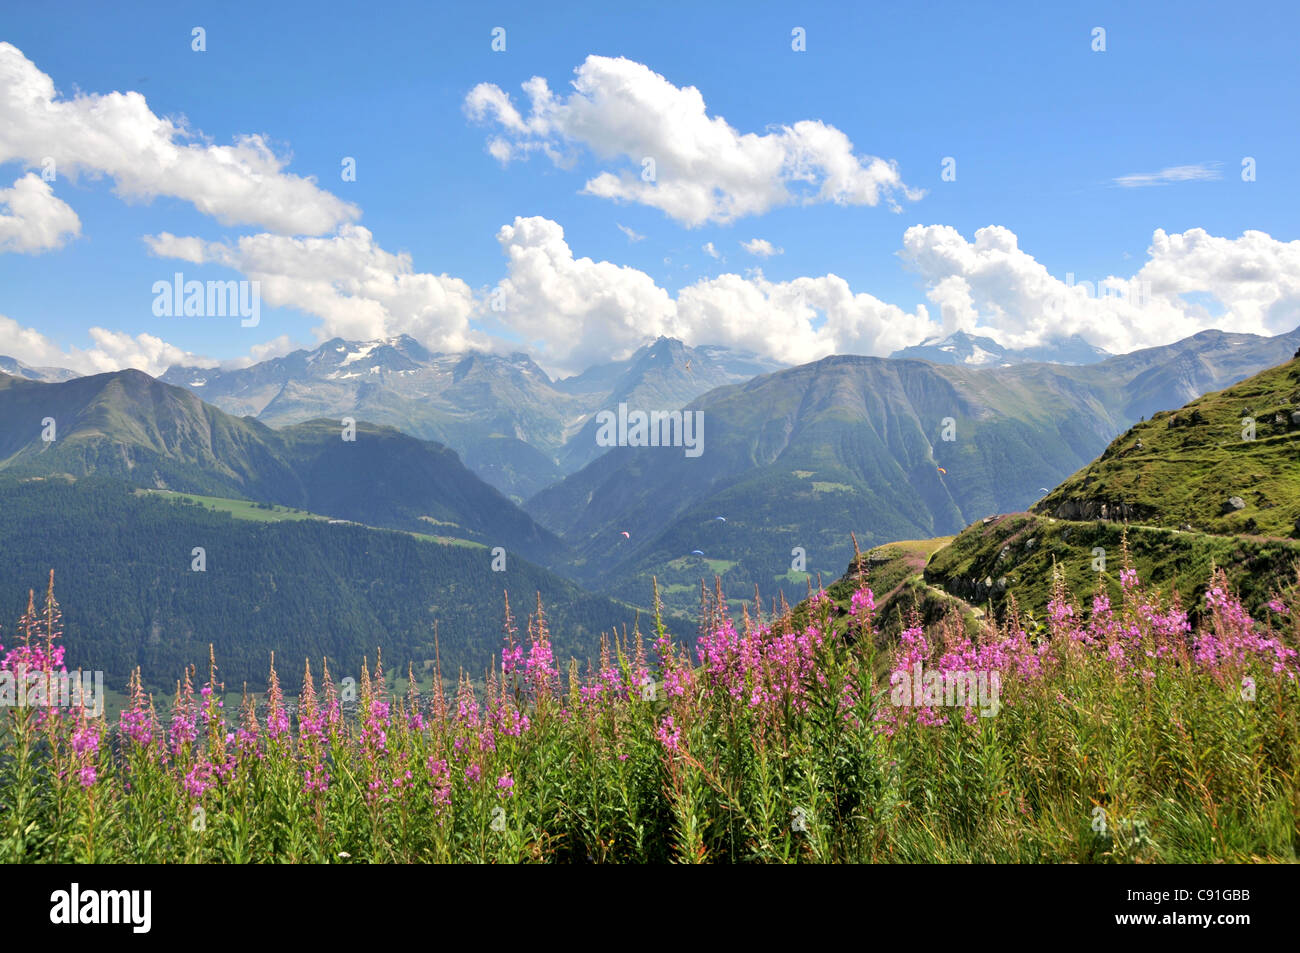 Wildflower meadow, Fiescheralp, Canton of Valais, Switzerland - Stock Image